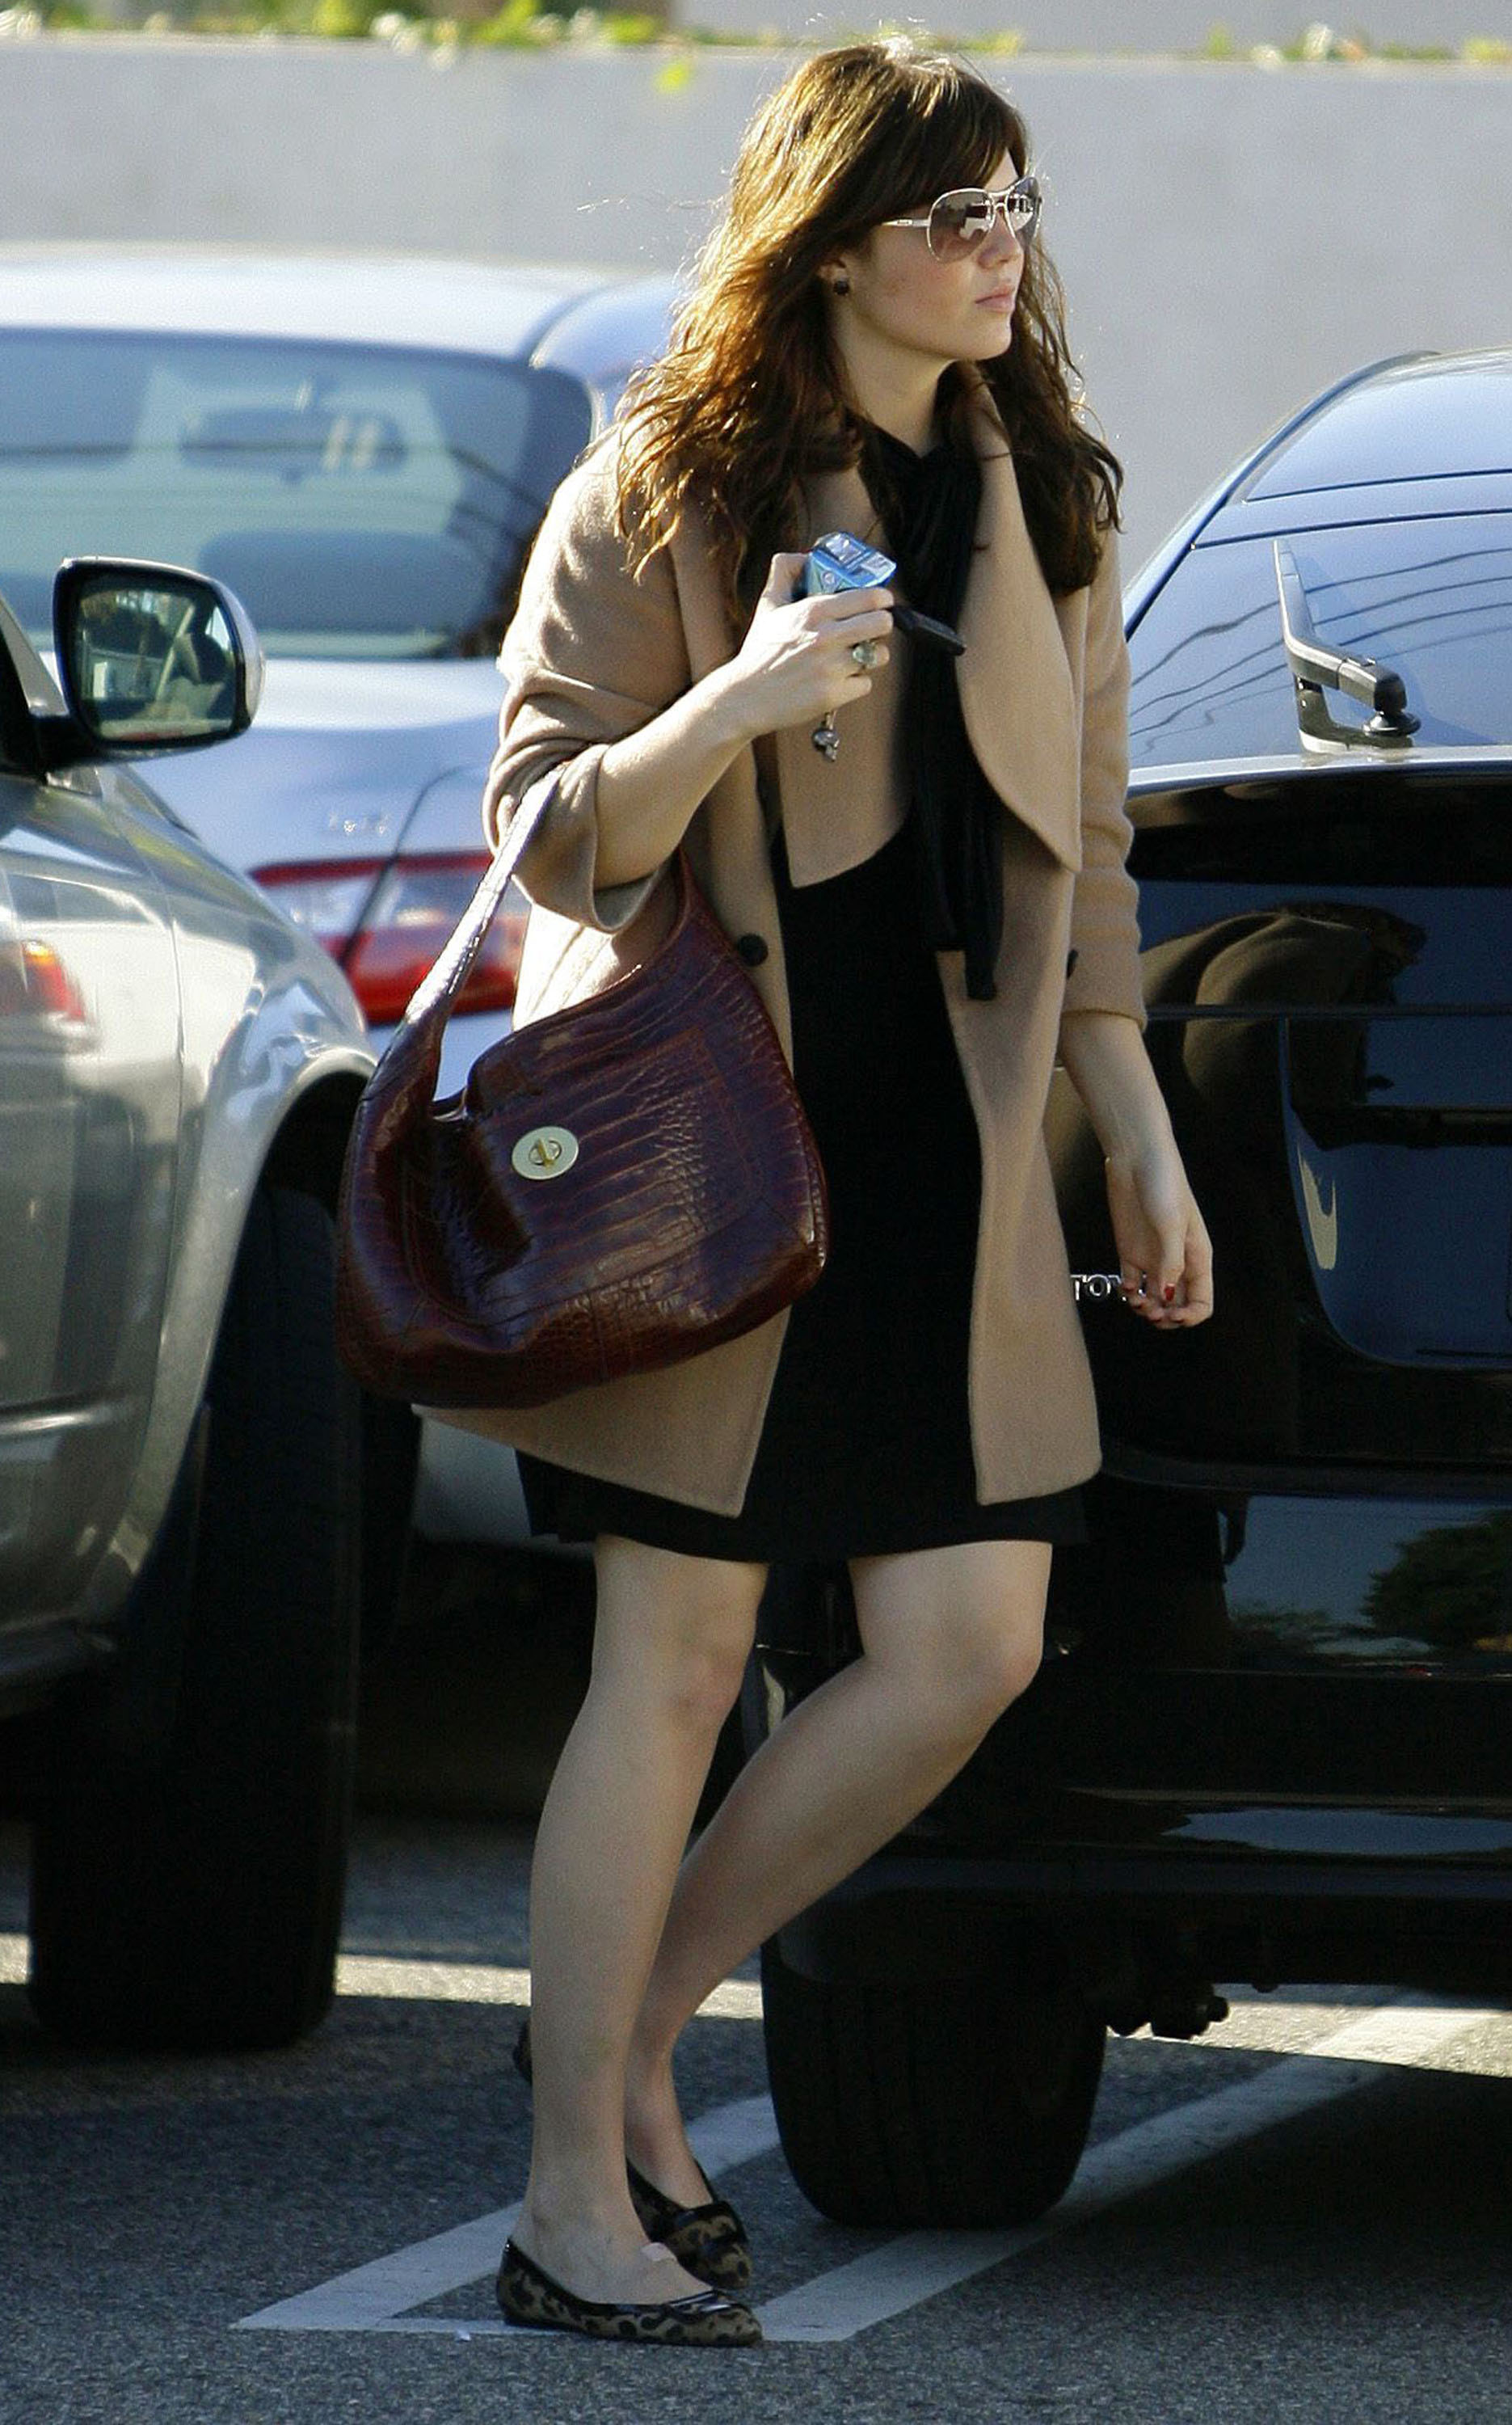 68029_celeb-city.eu_Mandy_Moore_out_and_about_in_West_Hollywood_10.12.2007_24_122_408lo.jpg